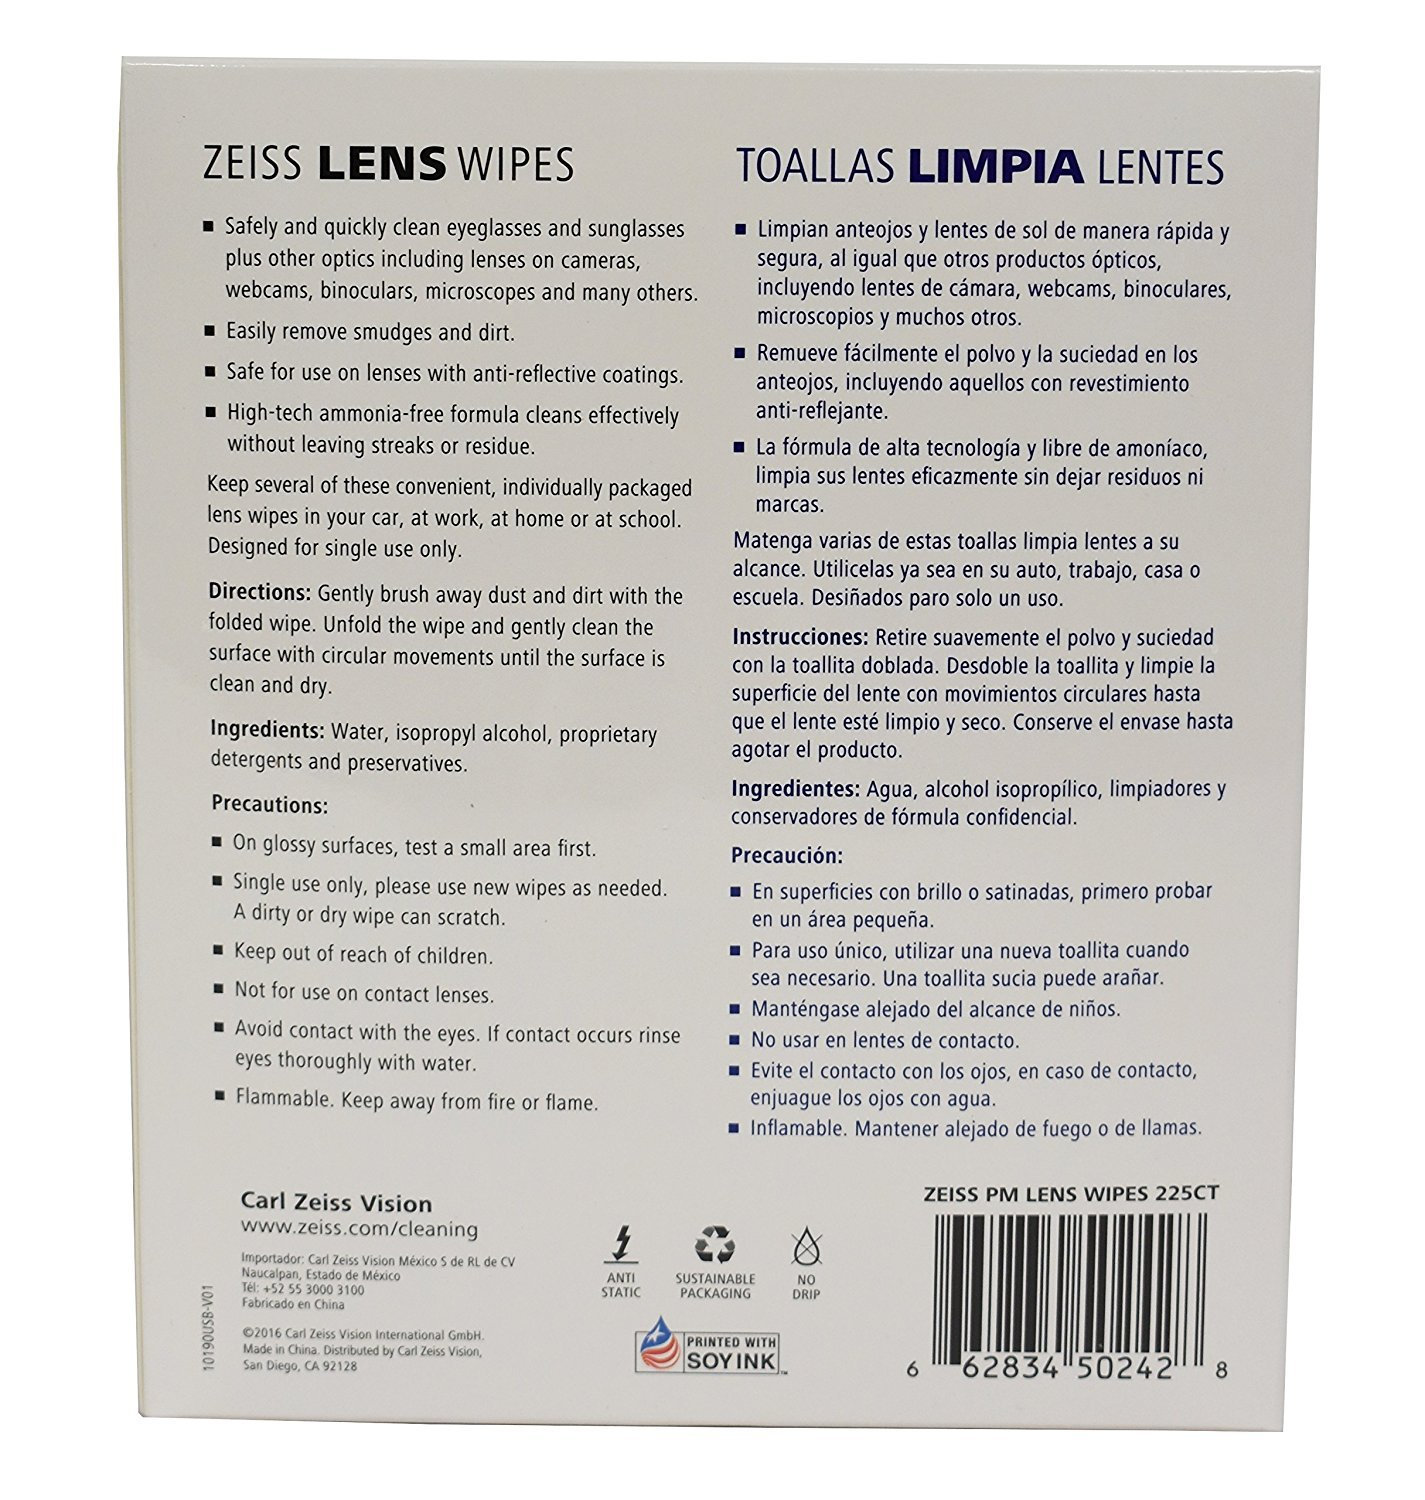 Amazon.com: Zeiss Pre-Moistened Lens Cleaning Wipes, 225 ct, Convenient Dispenser Pack: Health & Personal Care